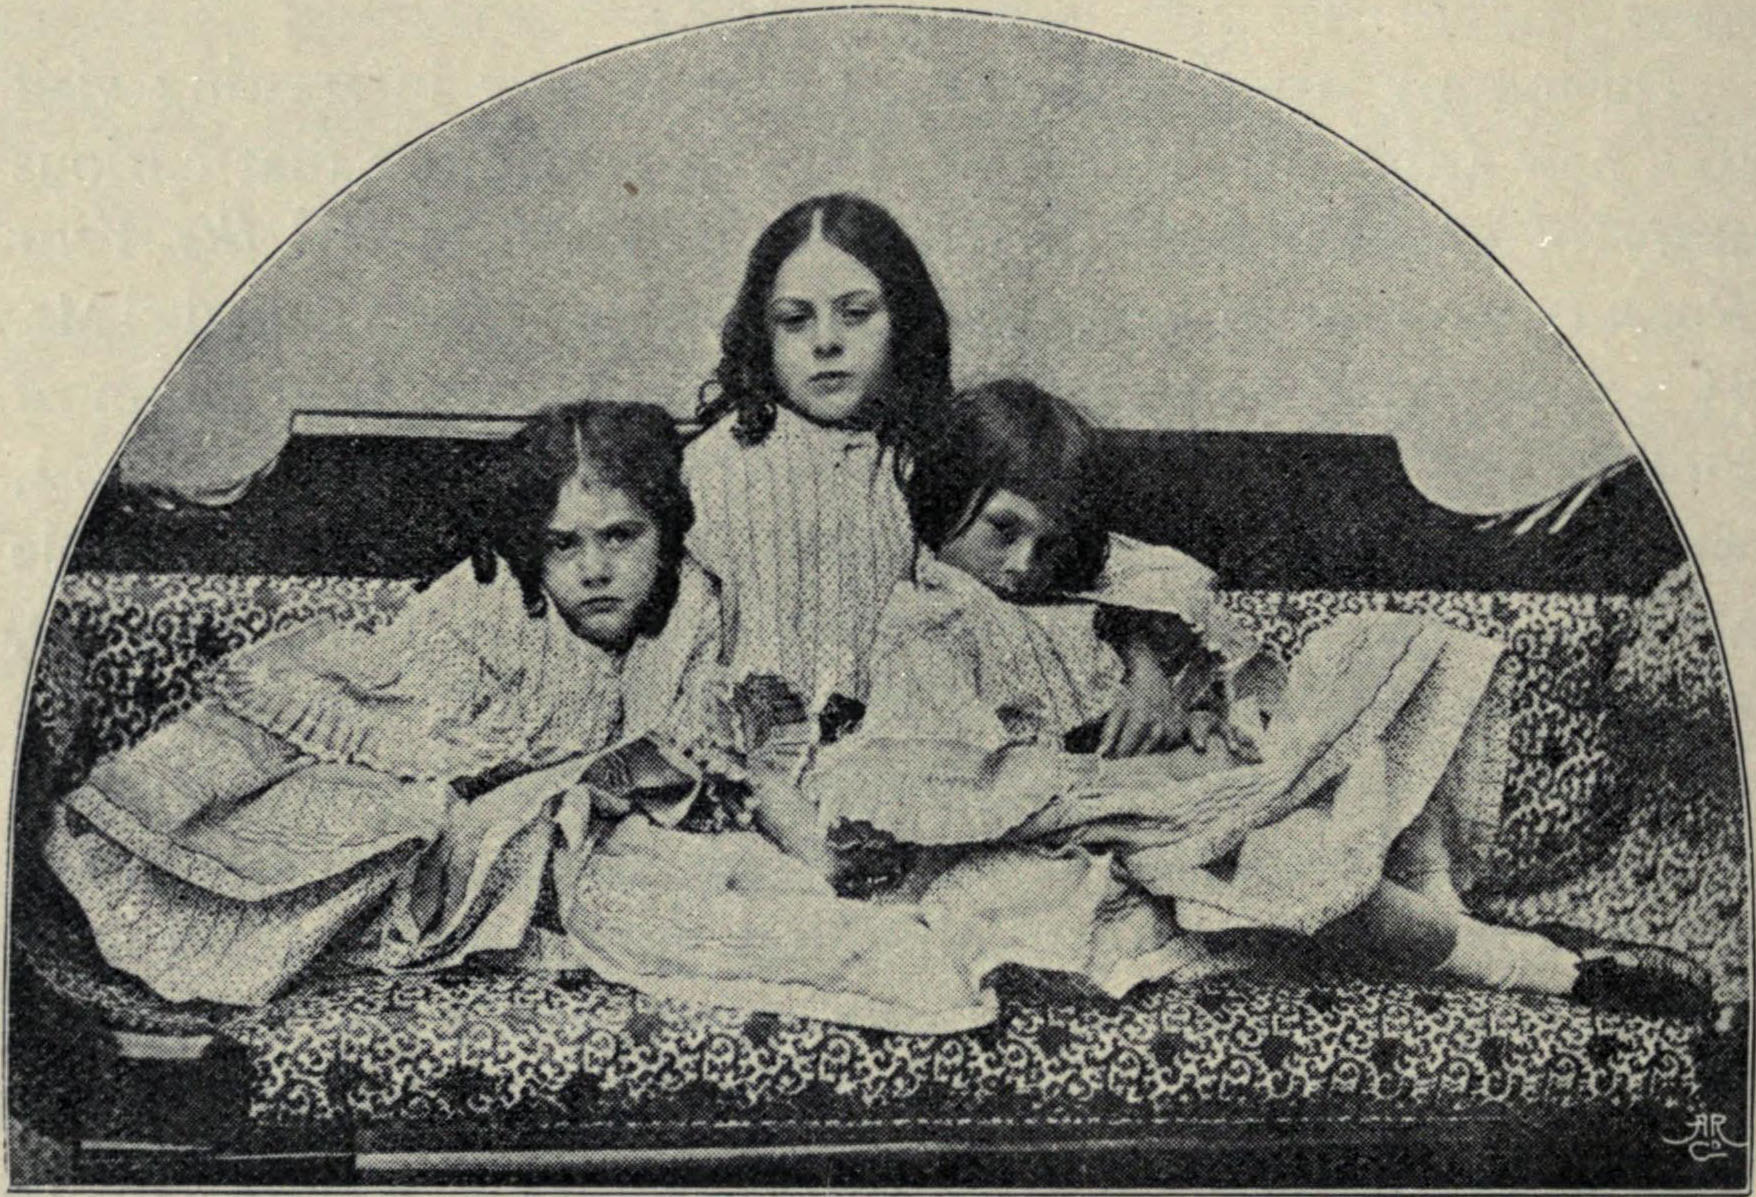 http://upload.wikimedia.org/wikipedia/commons/8/82/Lorina,_Edith,_and_Alice_Liddell_p94.jpg